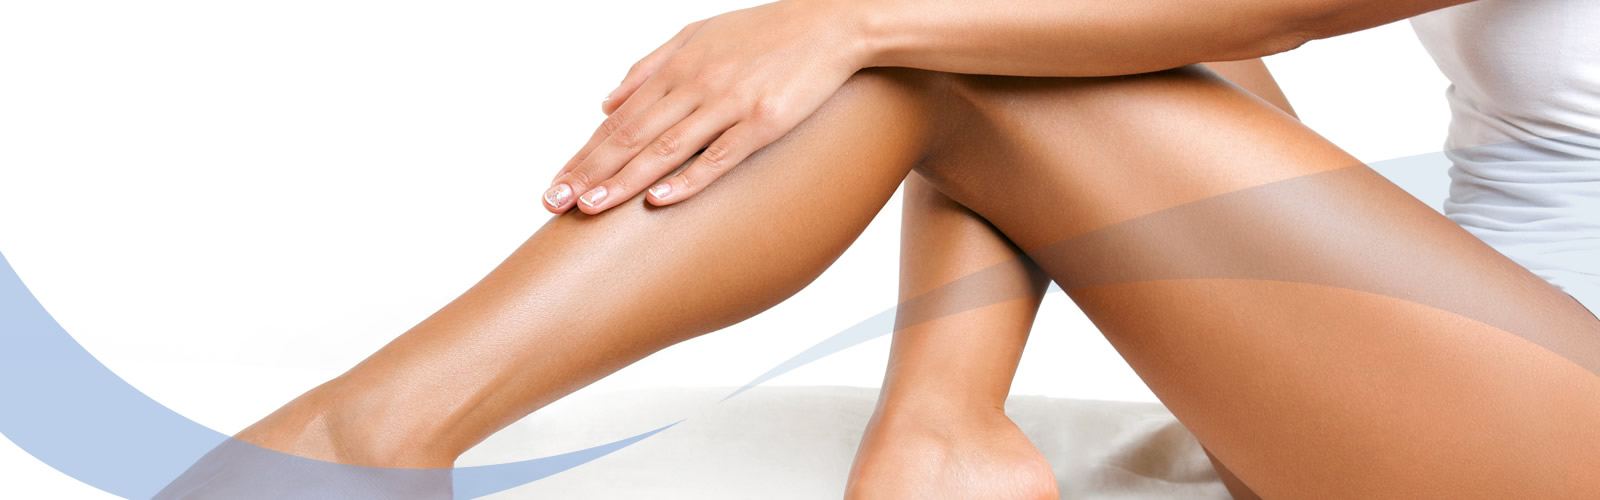 Premier Vein Center of Arlington Heights Illinois